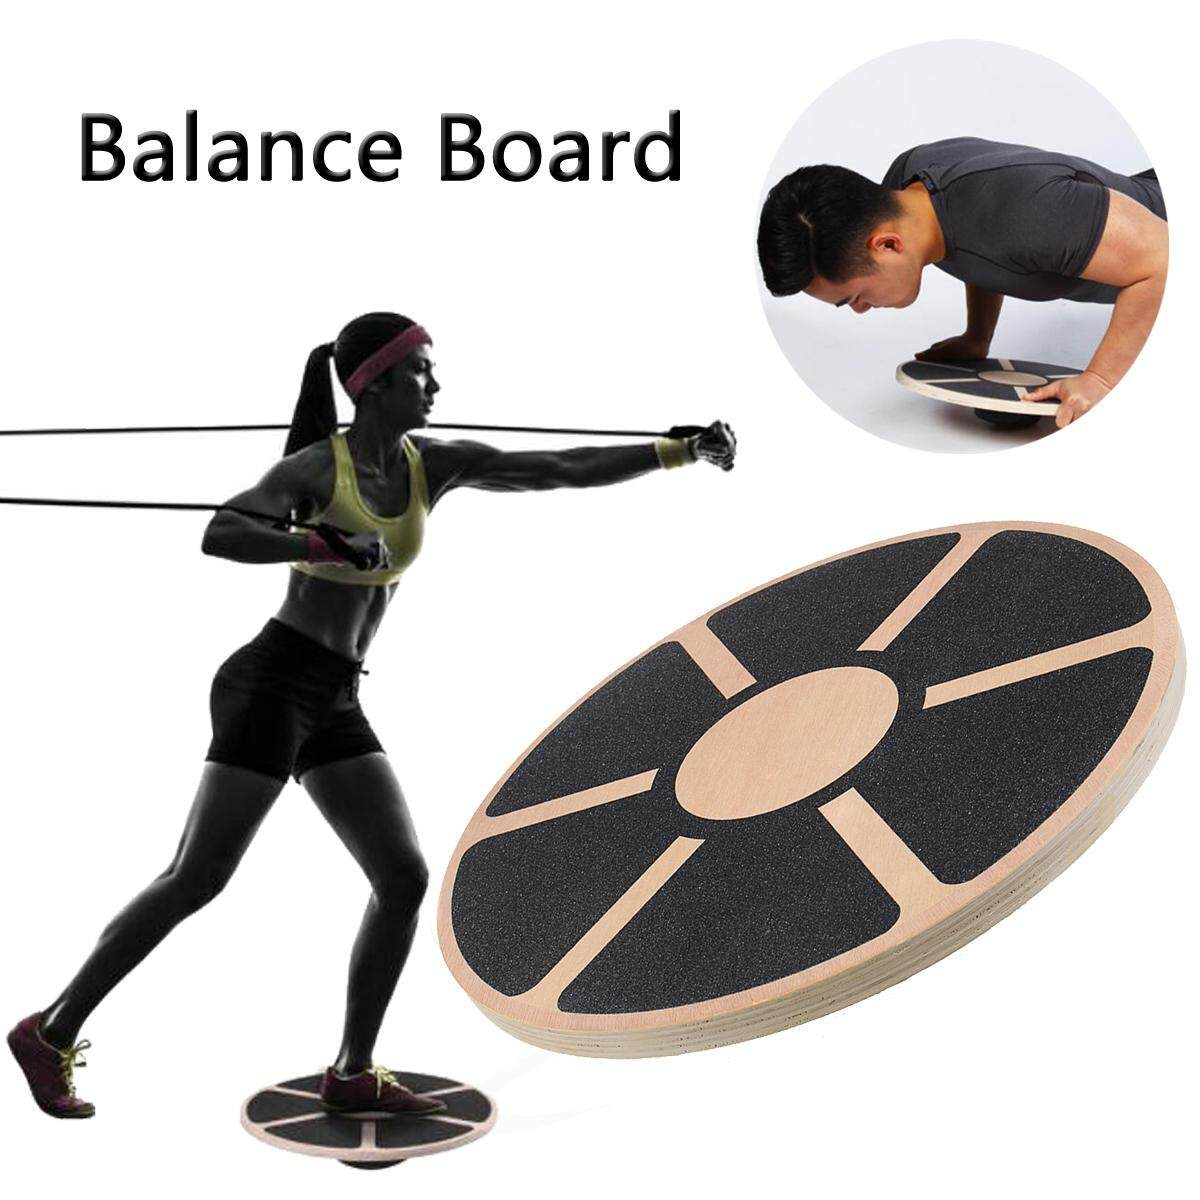 Letek Wooden Wobble Board Non-Slip Balance Training Exercise Rehabilitation Aid By Teamwin.